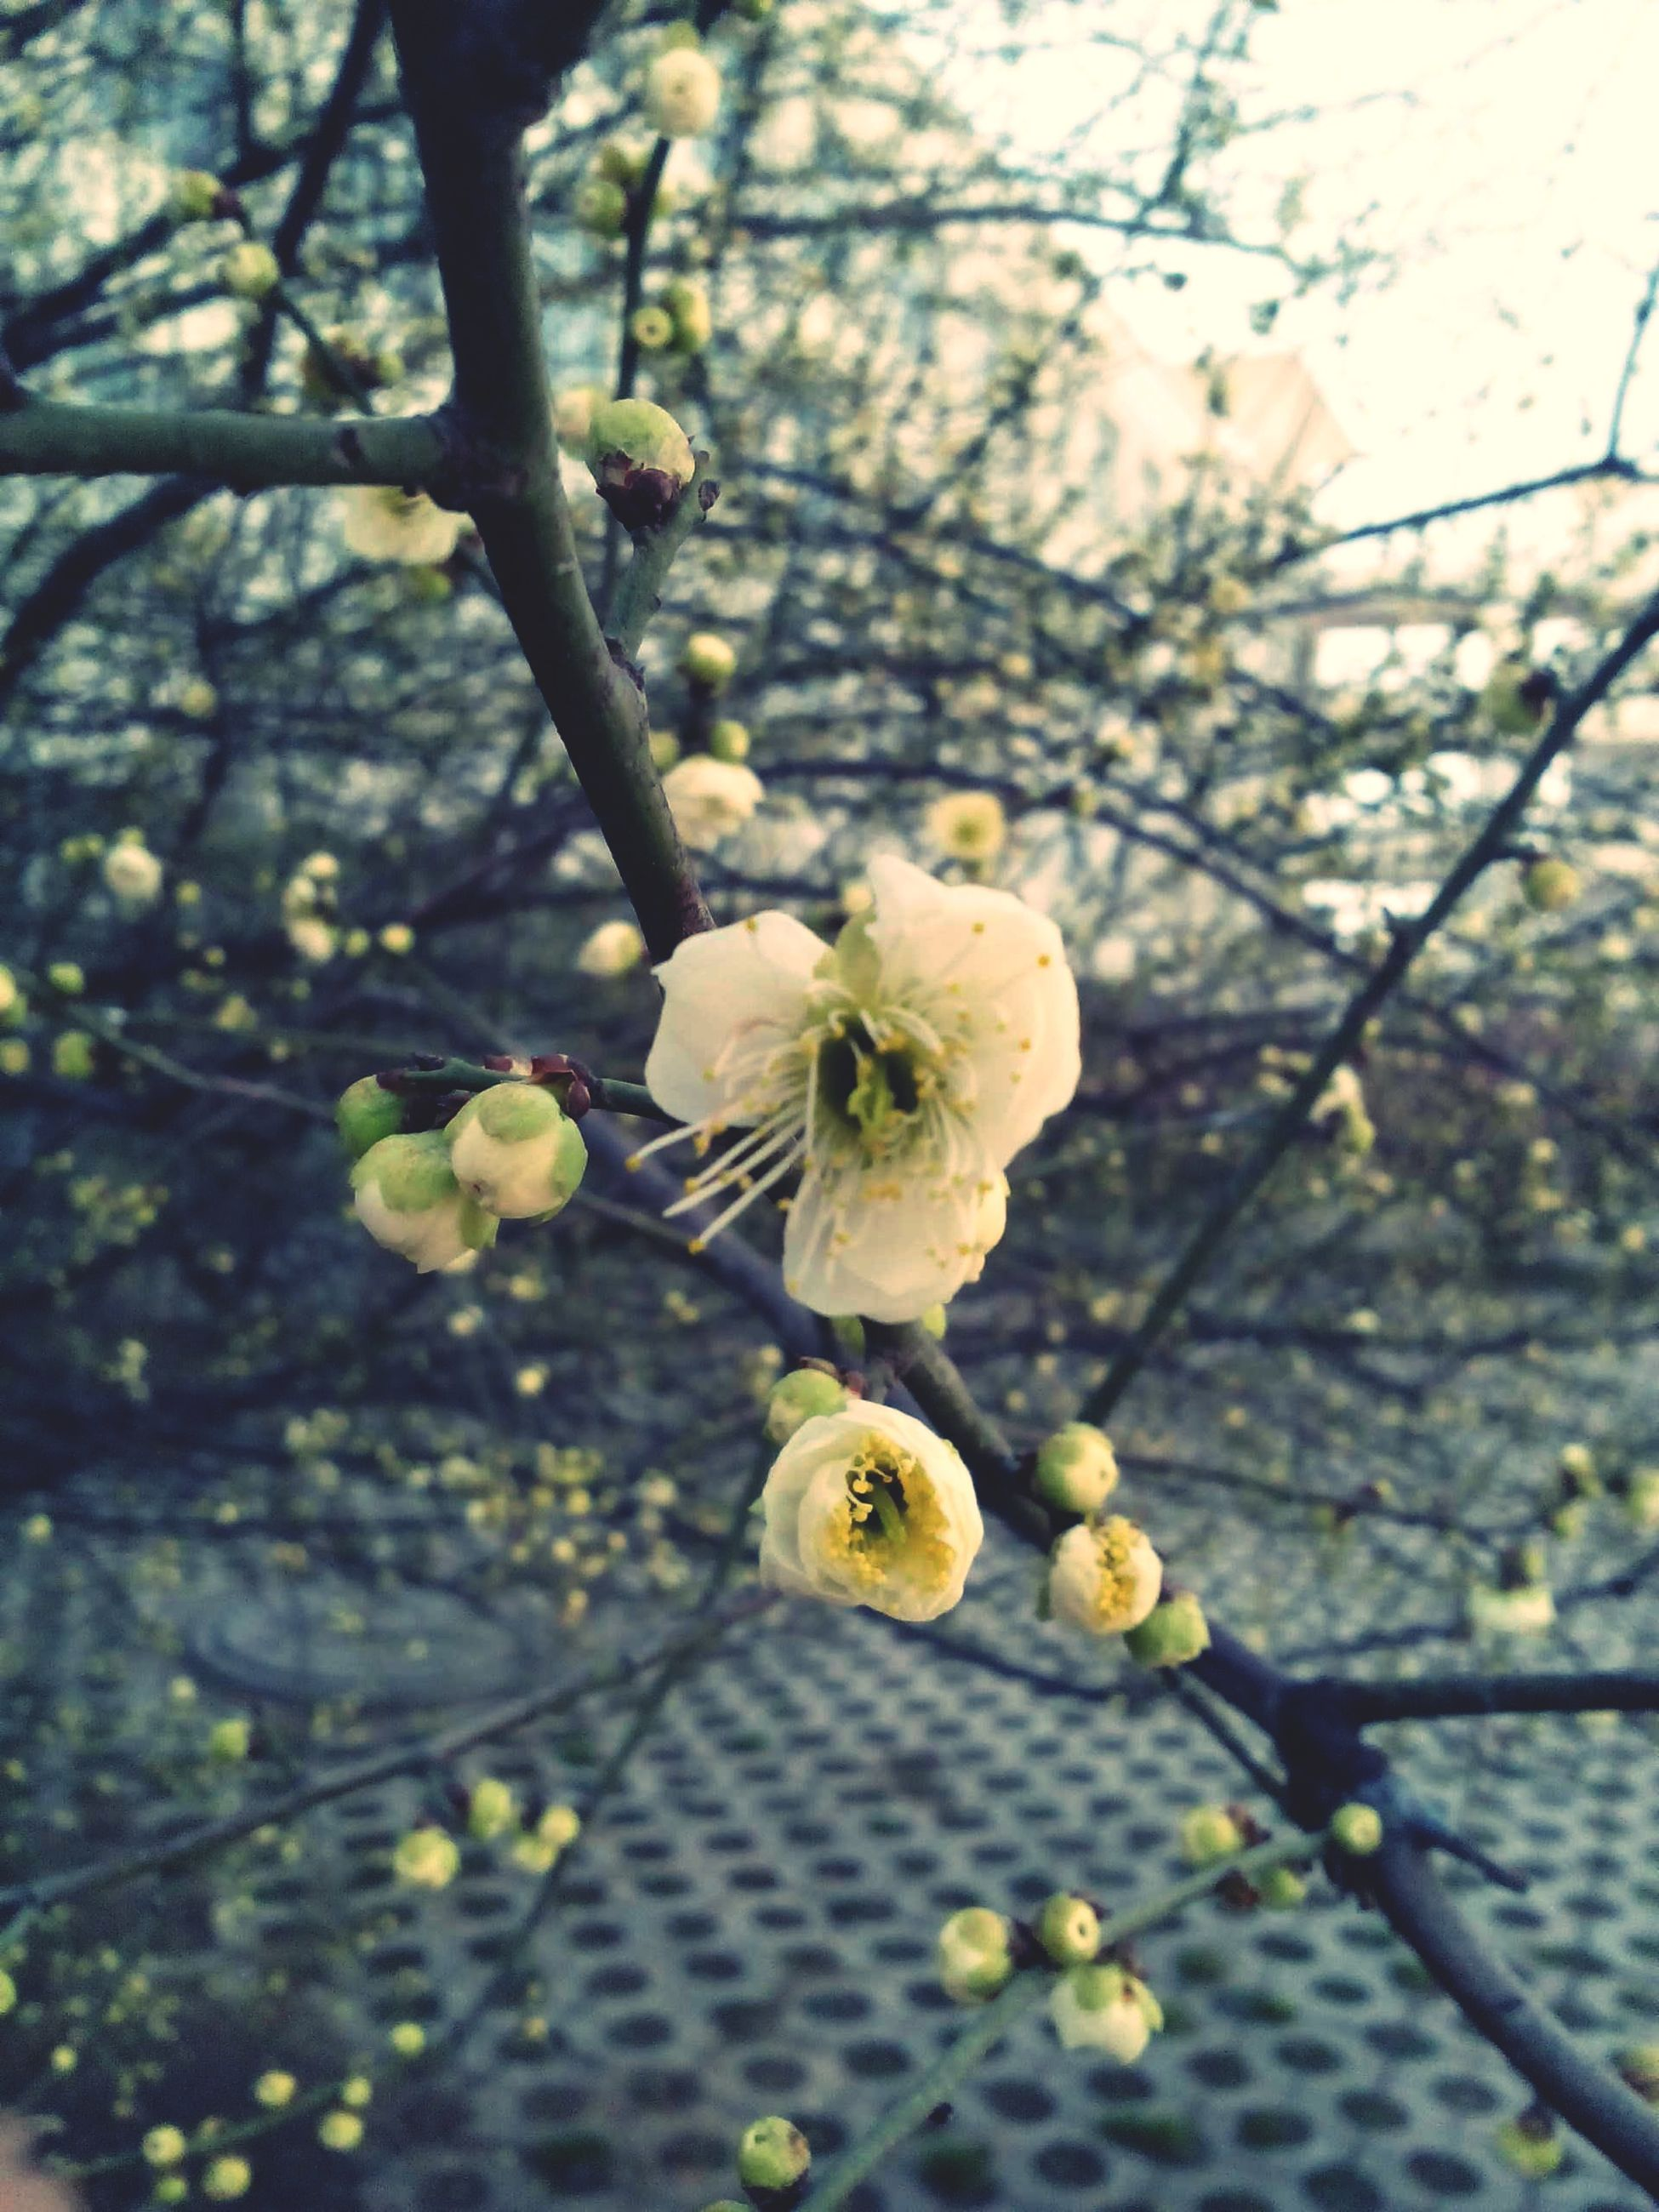 flower, freshness, fragility, petal, growth, branch, tree, close-up, nature, focus on foreground, flower head, yellow, beauty in nature, blossom, blooming, bud, in bloom, springtime, day, plant